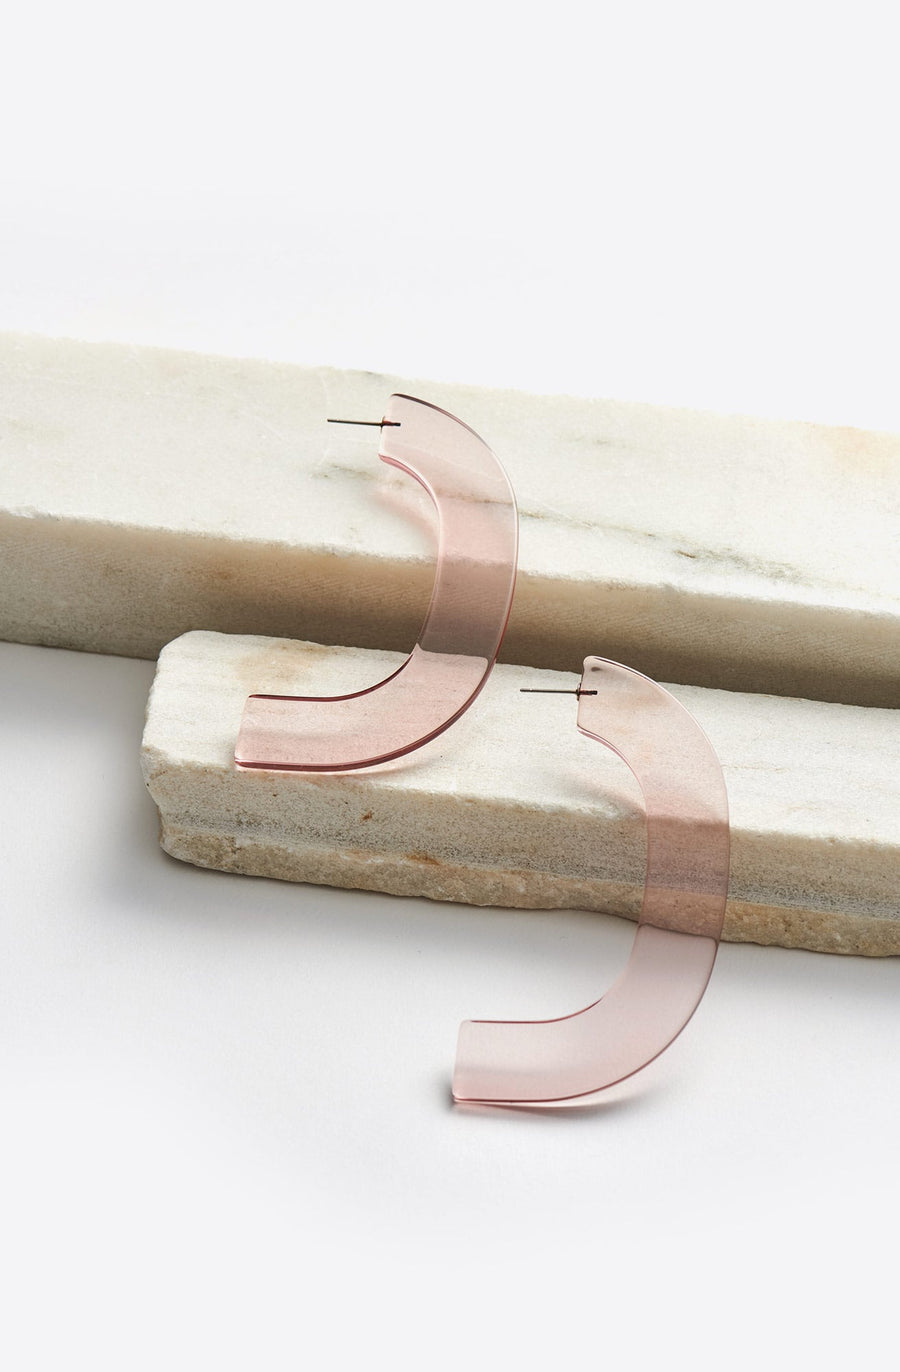 Handle Earrings-clear pink